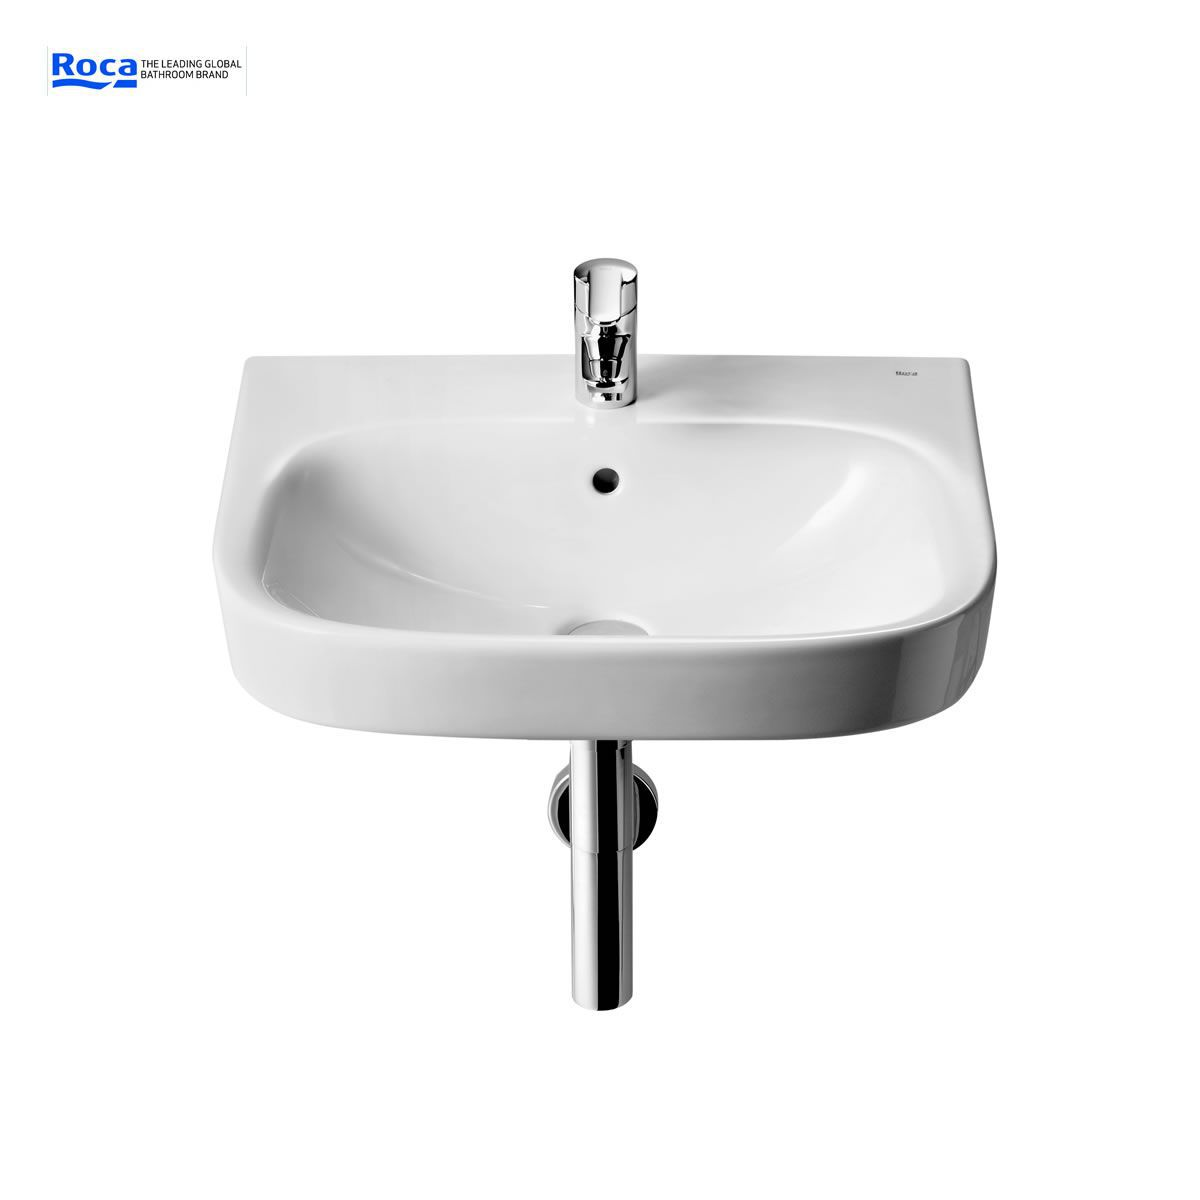 roca bathroom sinks roca debba bathroom basin uk bathrooms 14235 | 34568